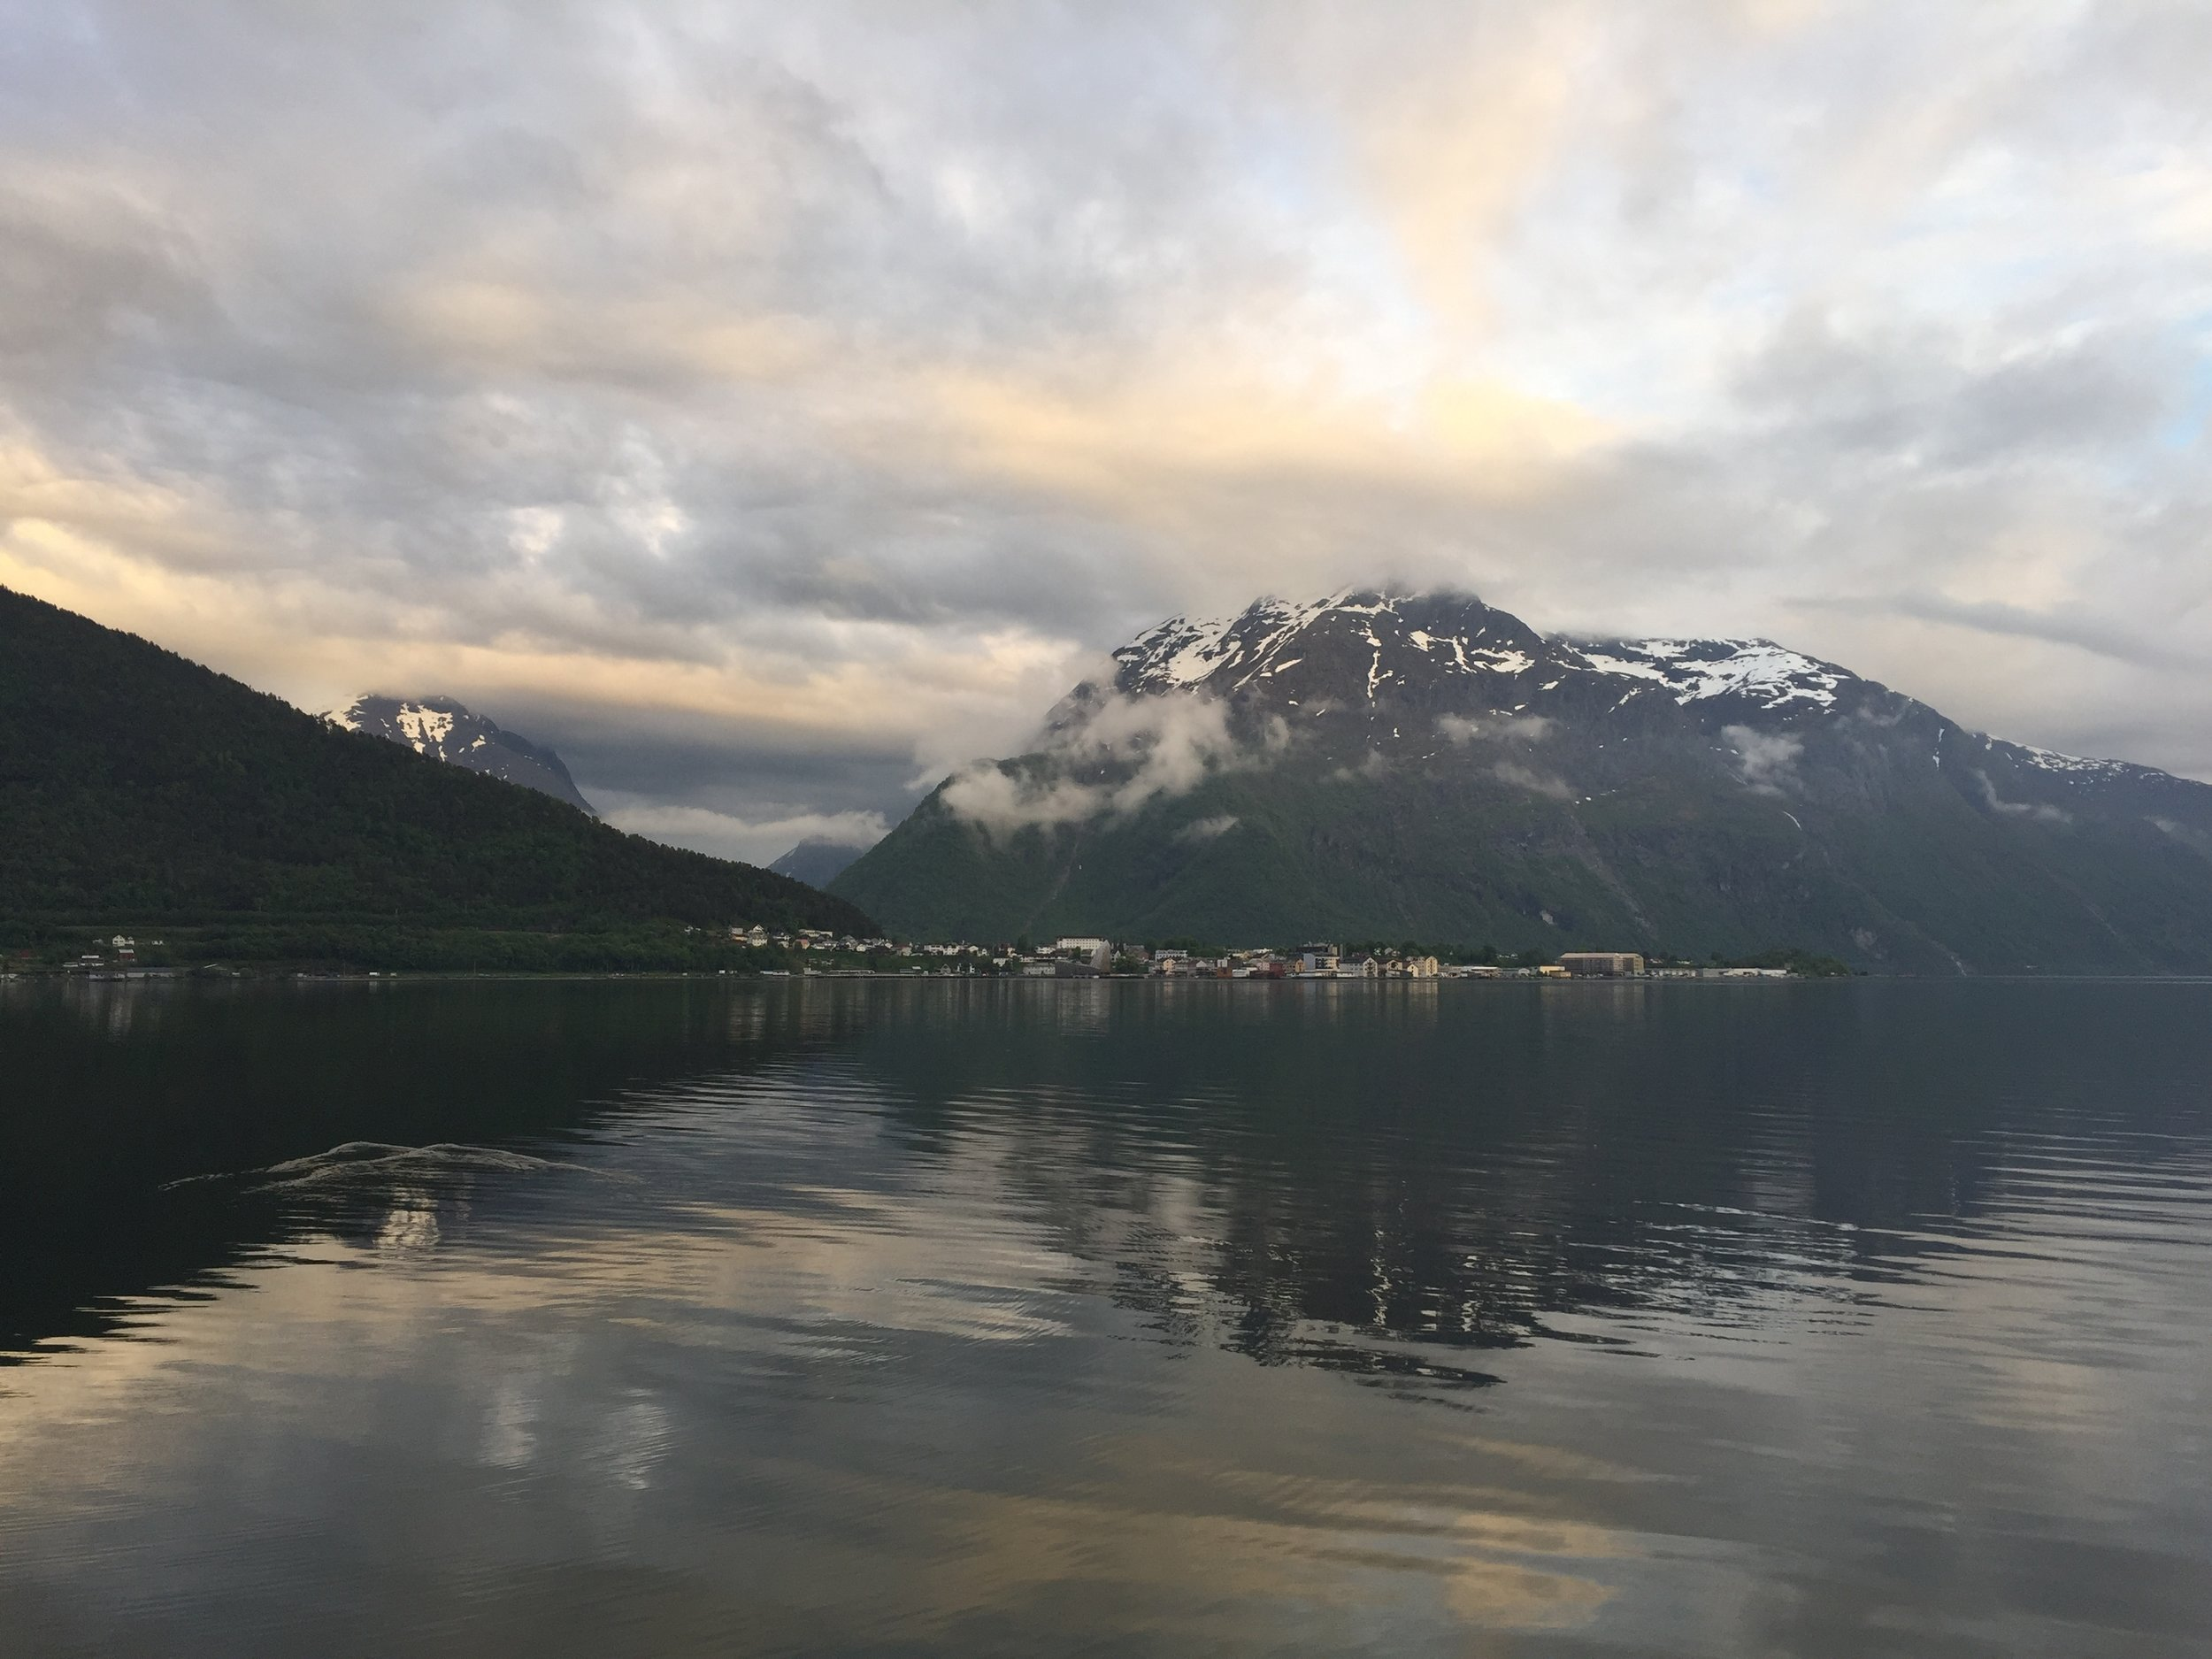 """Sunset"" at 10:45 pm, Åndalsnes, Norway."